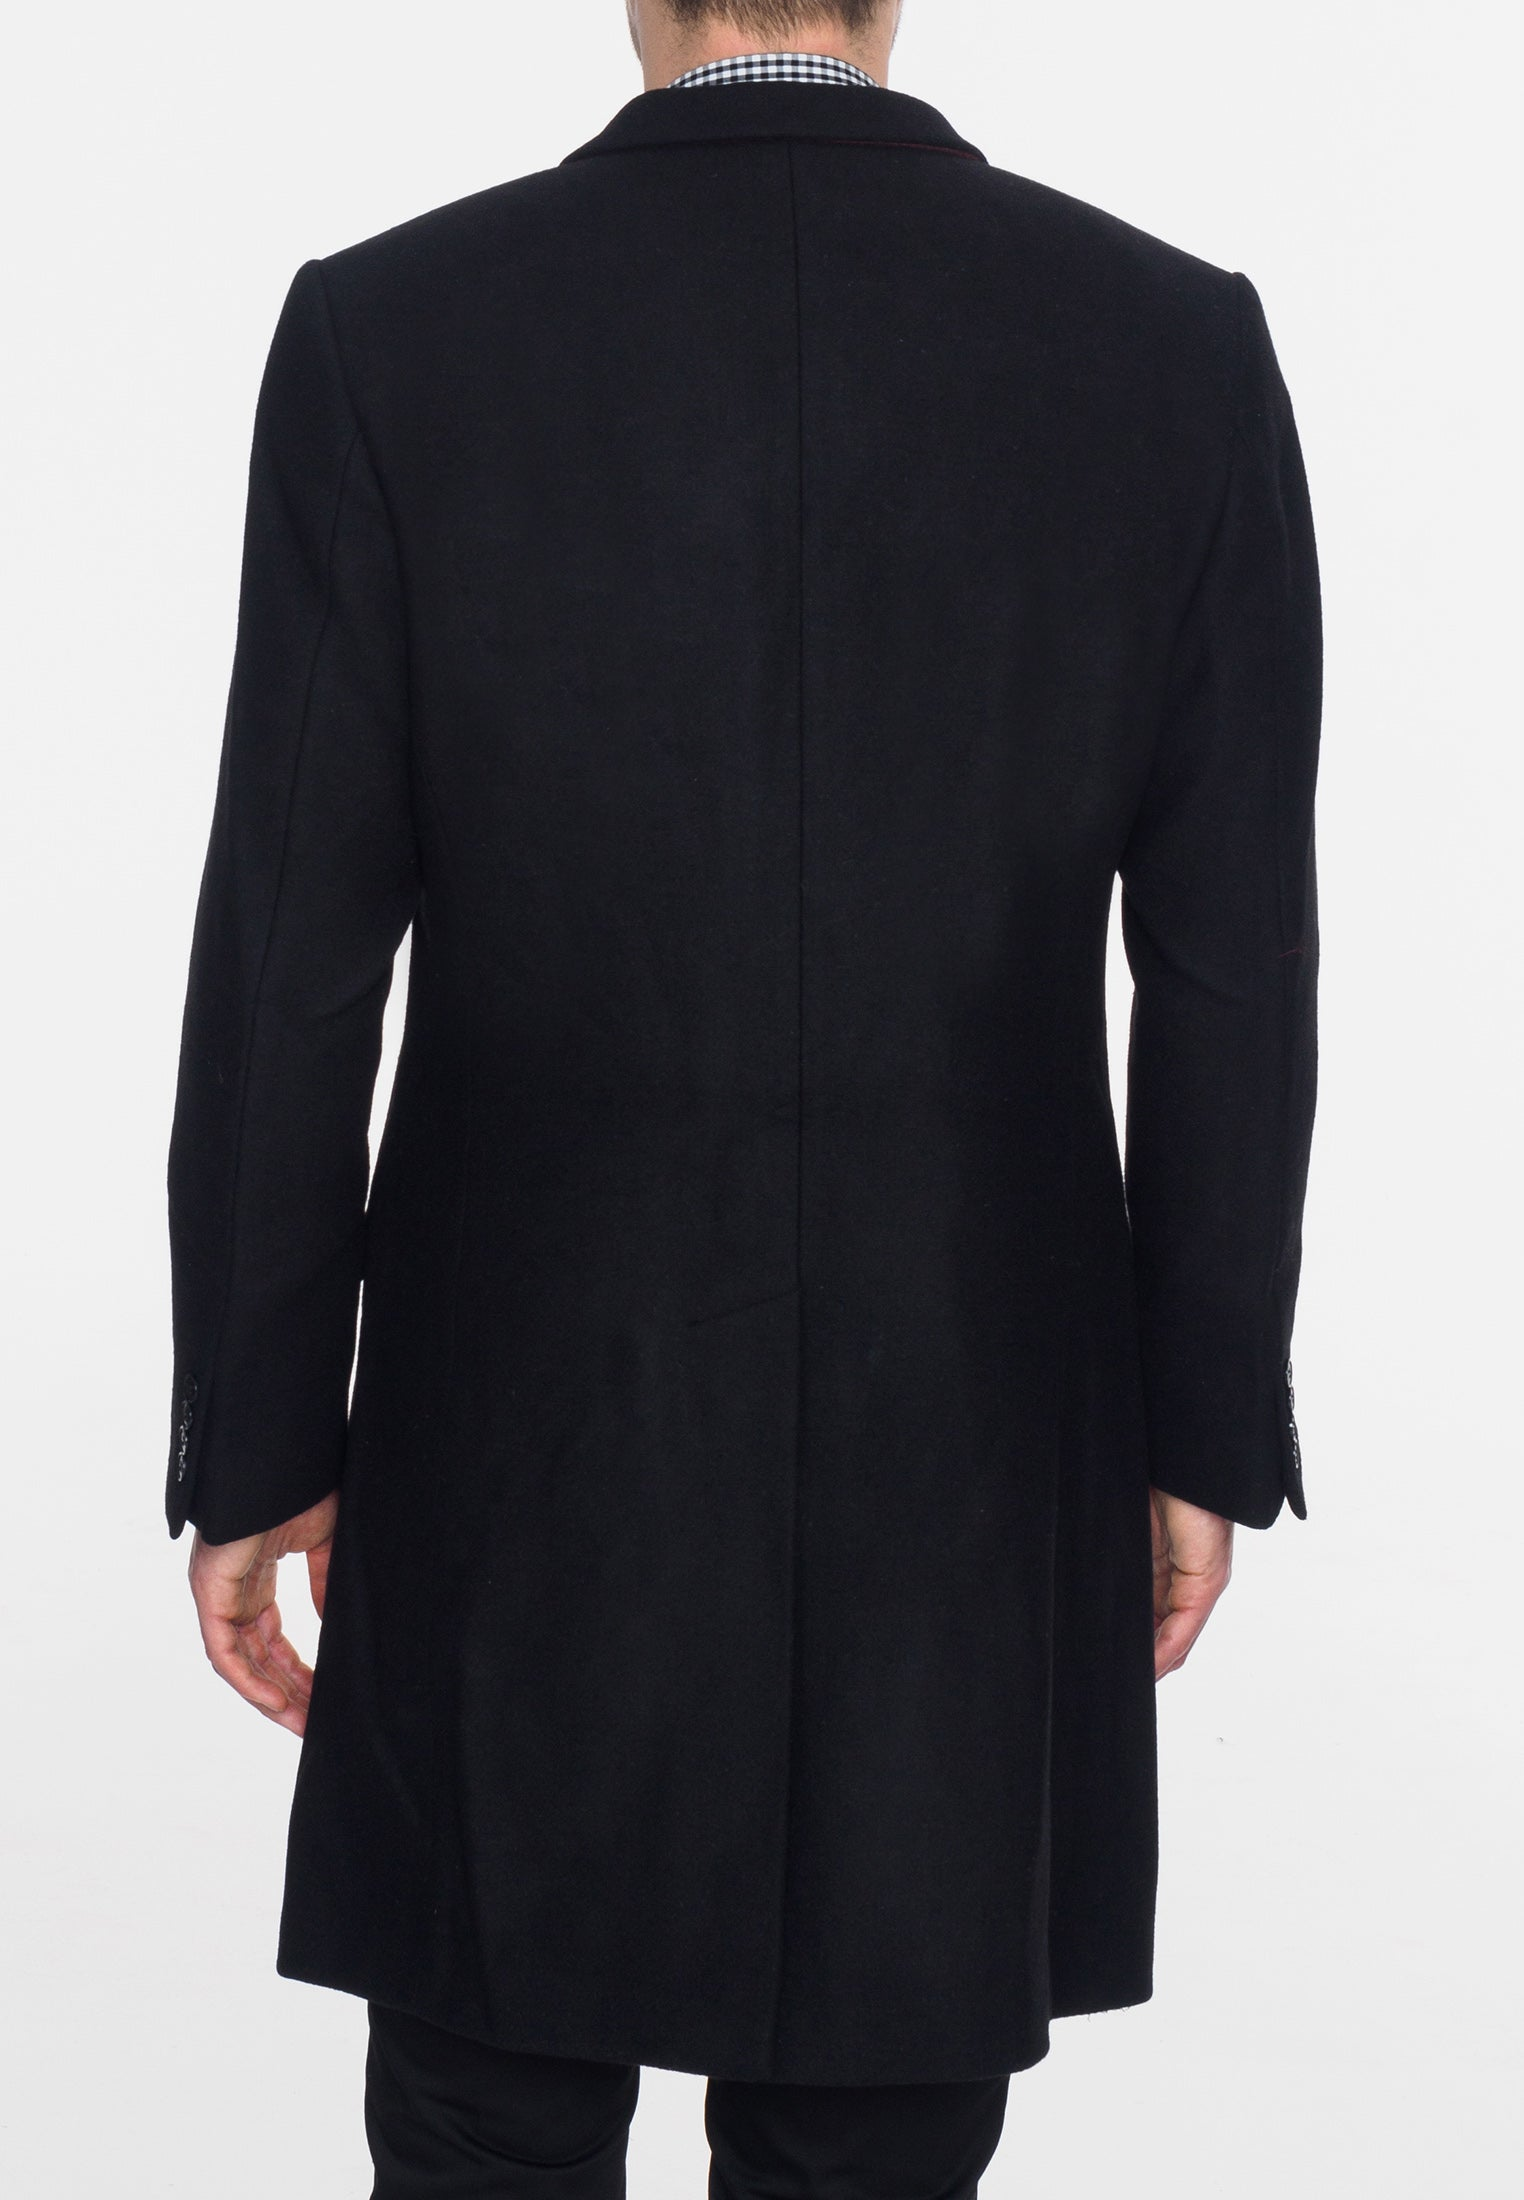 WALESBY Tailored wool overcoat - Merc London